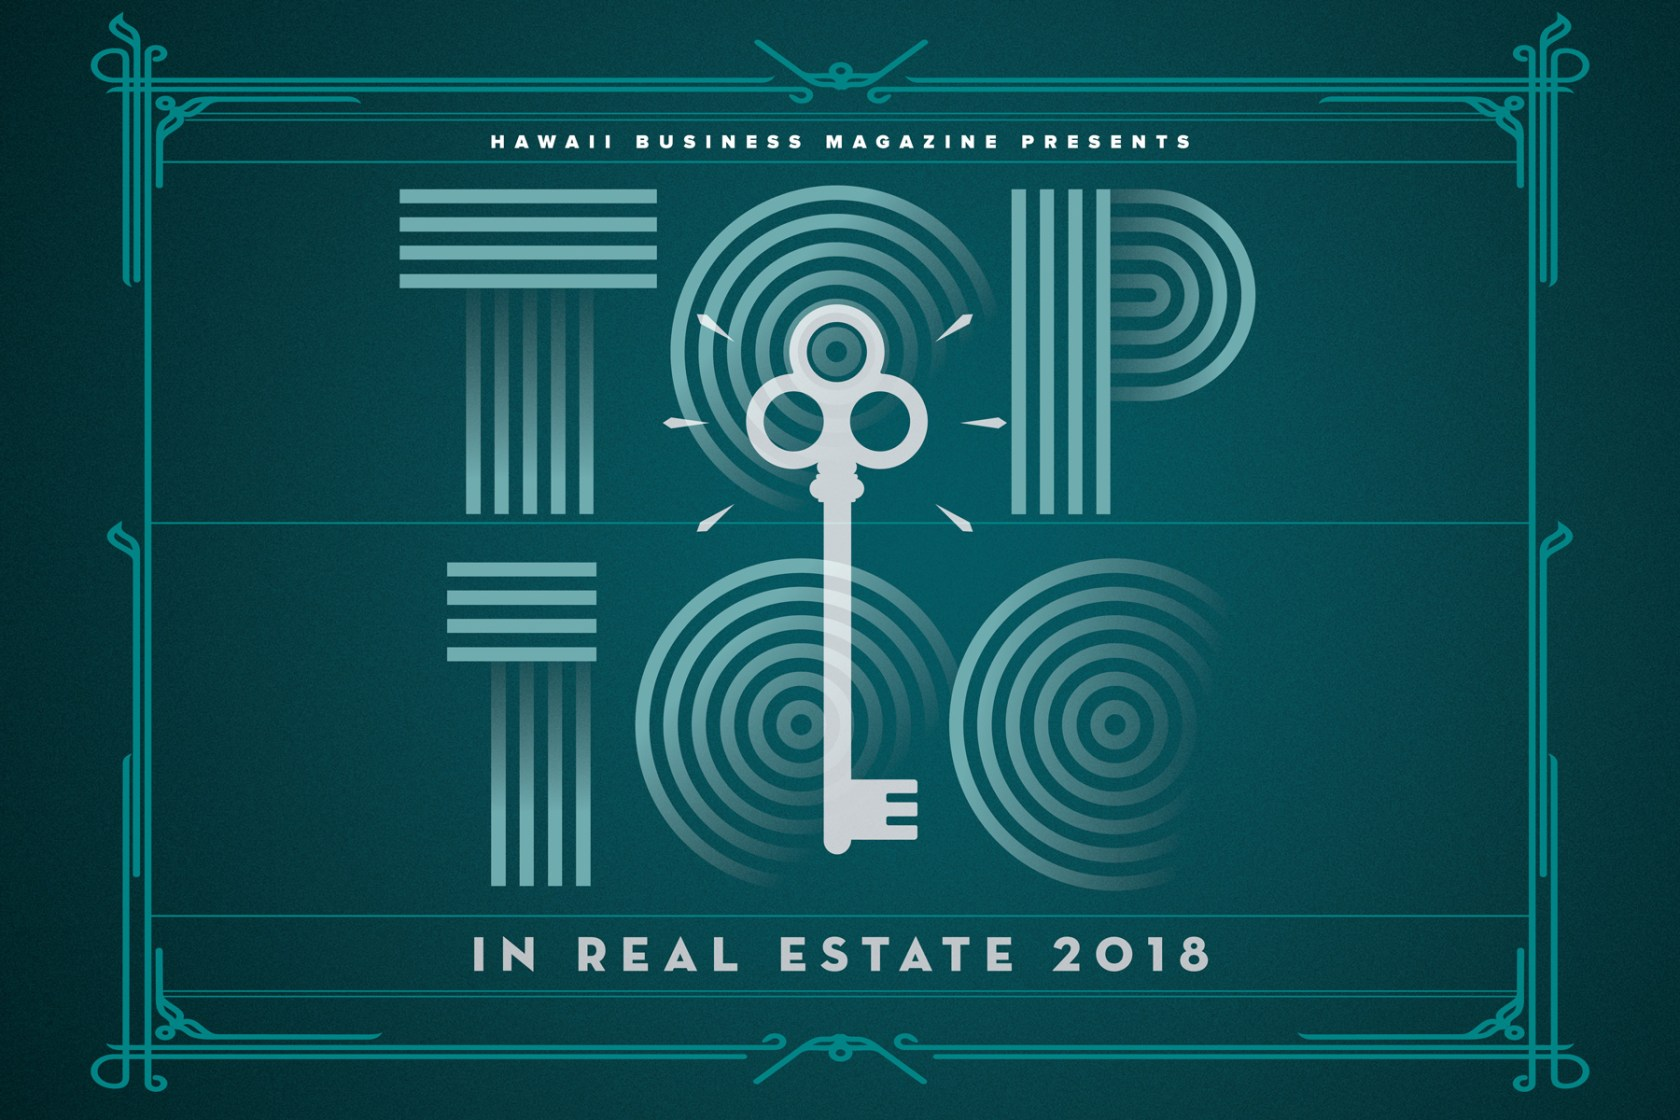 Jaymes Song Recognized as one of Hawaii's Top 100 Realtors